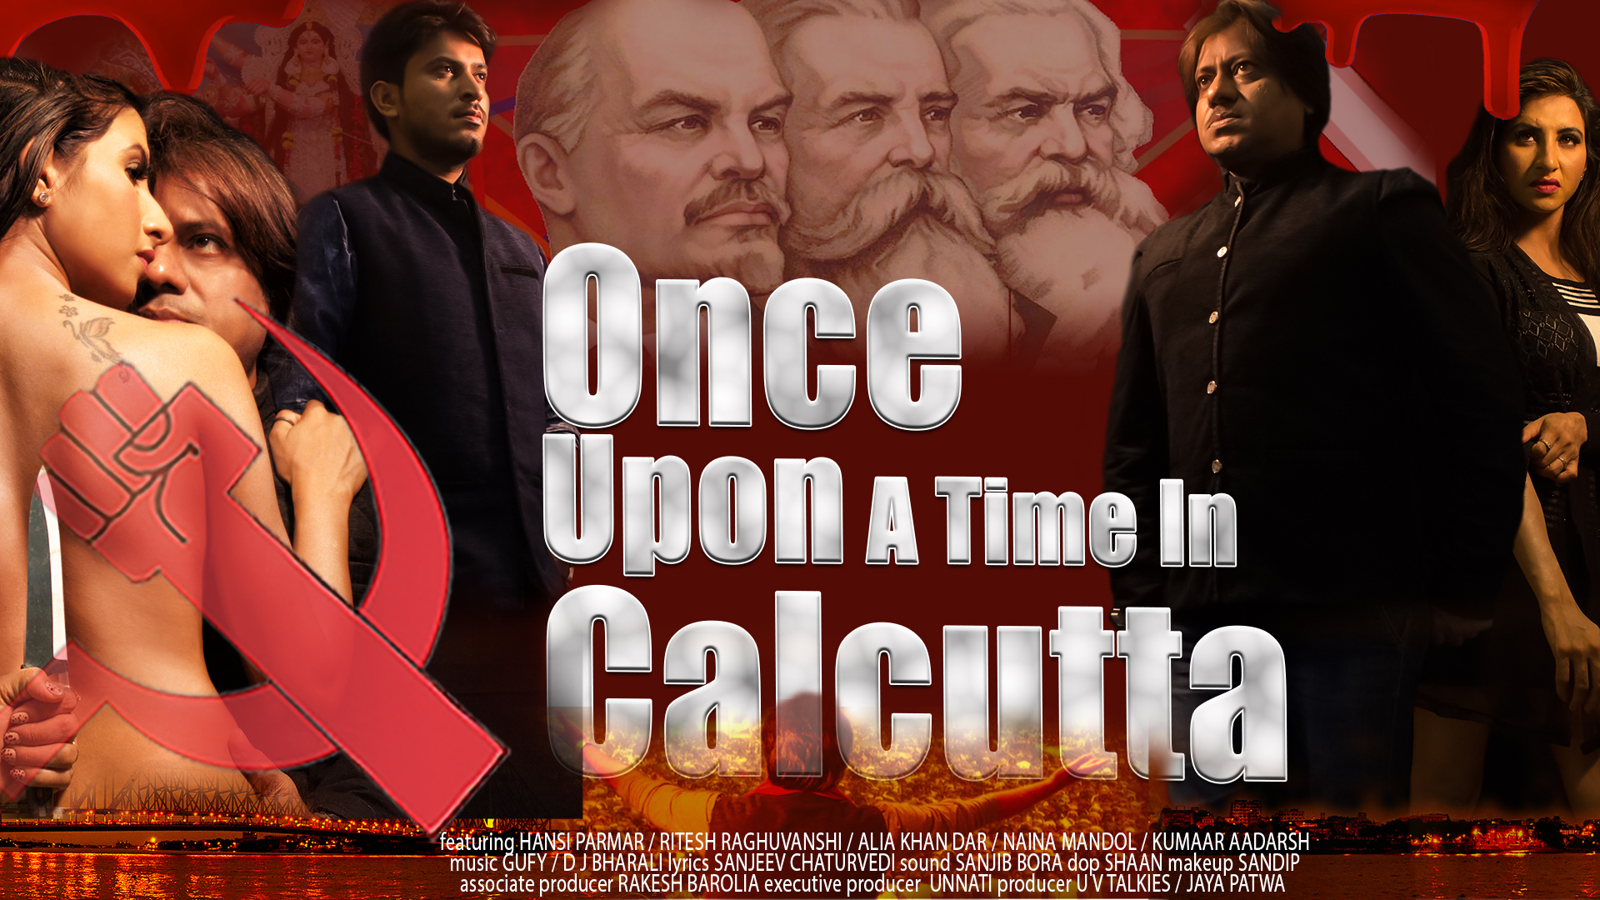 Rs.49 - Once Upon A Time In Calcutta